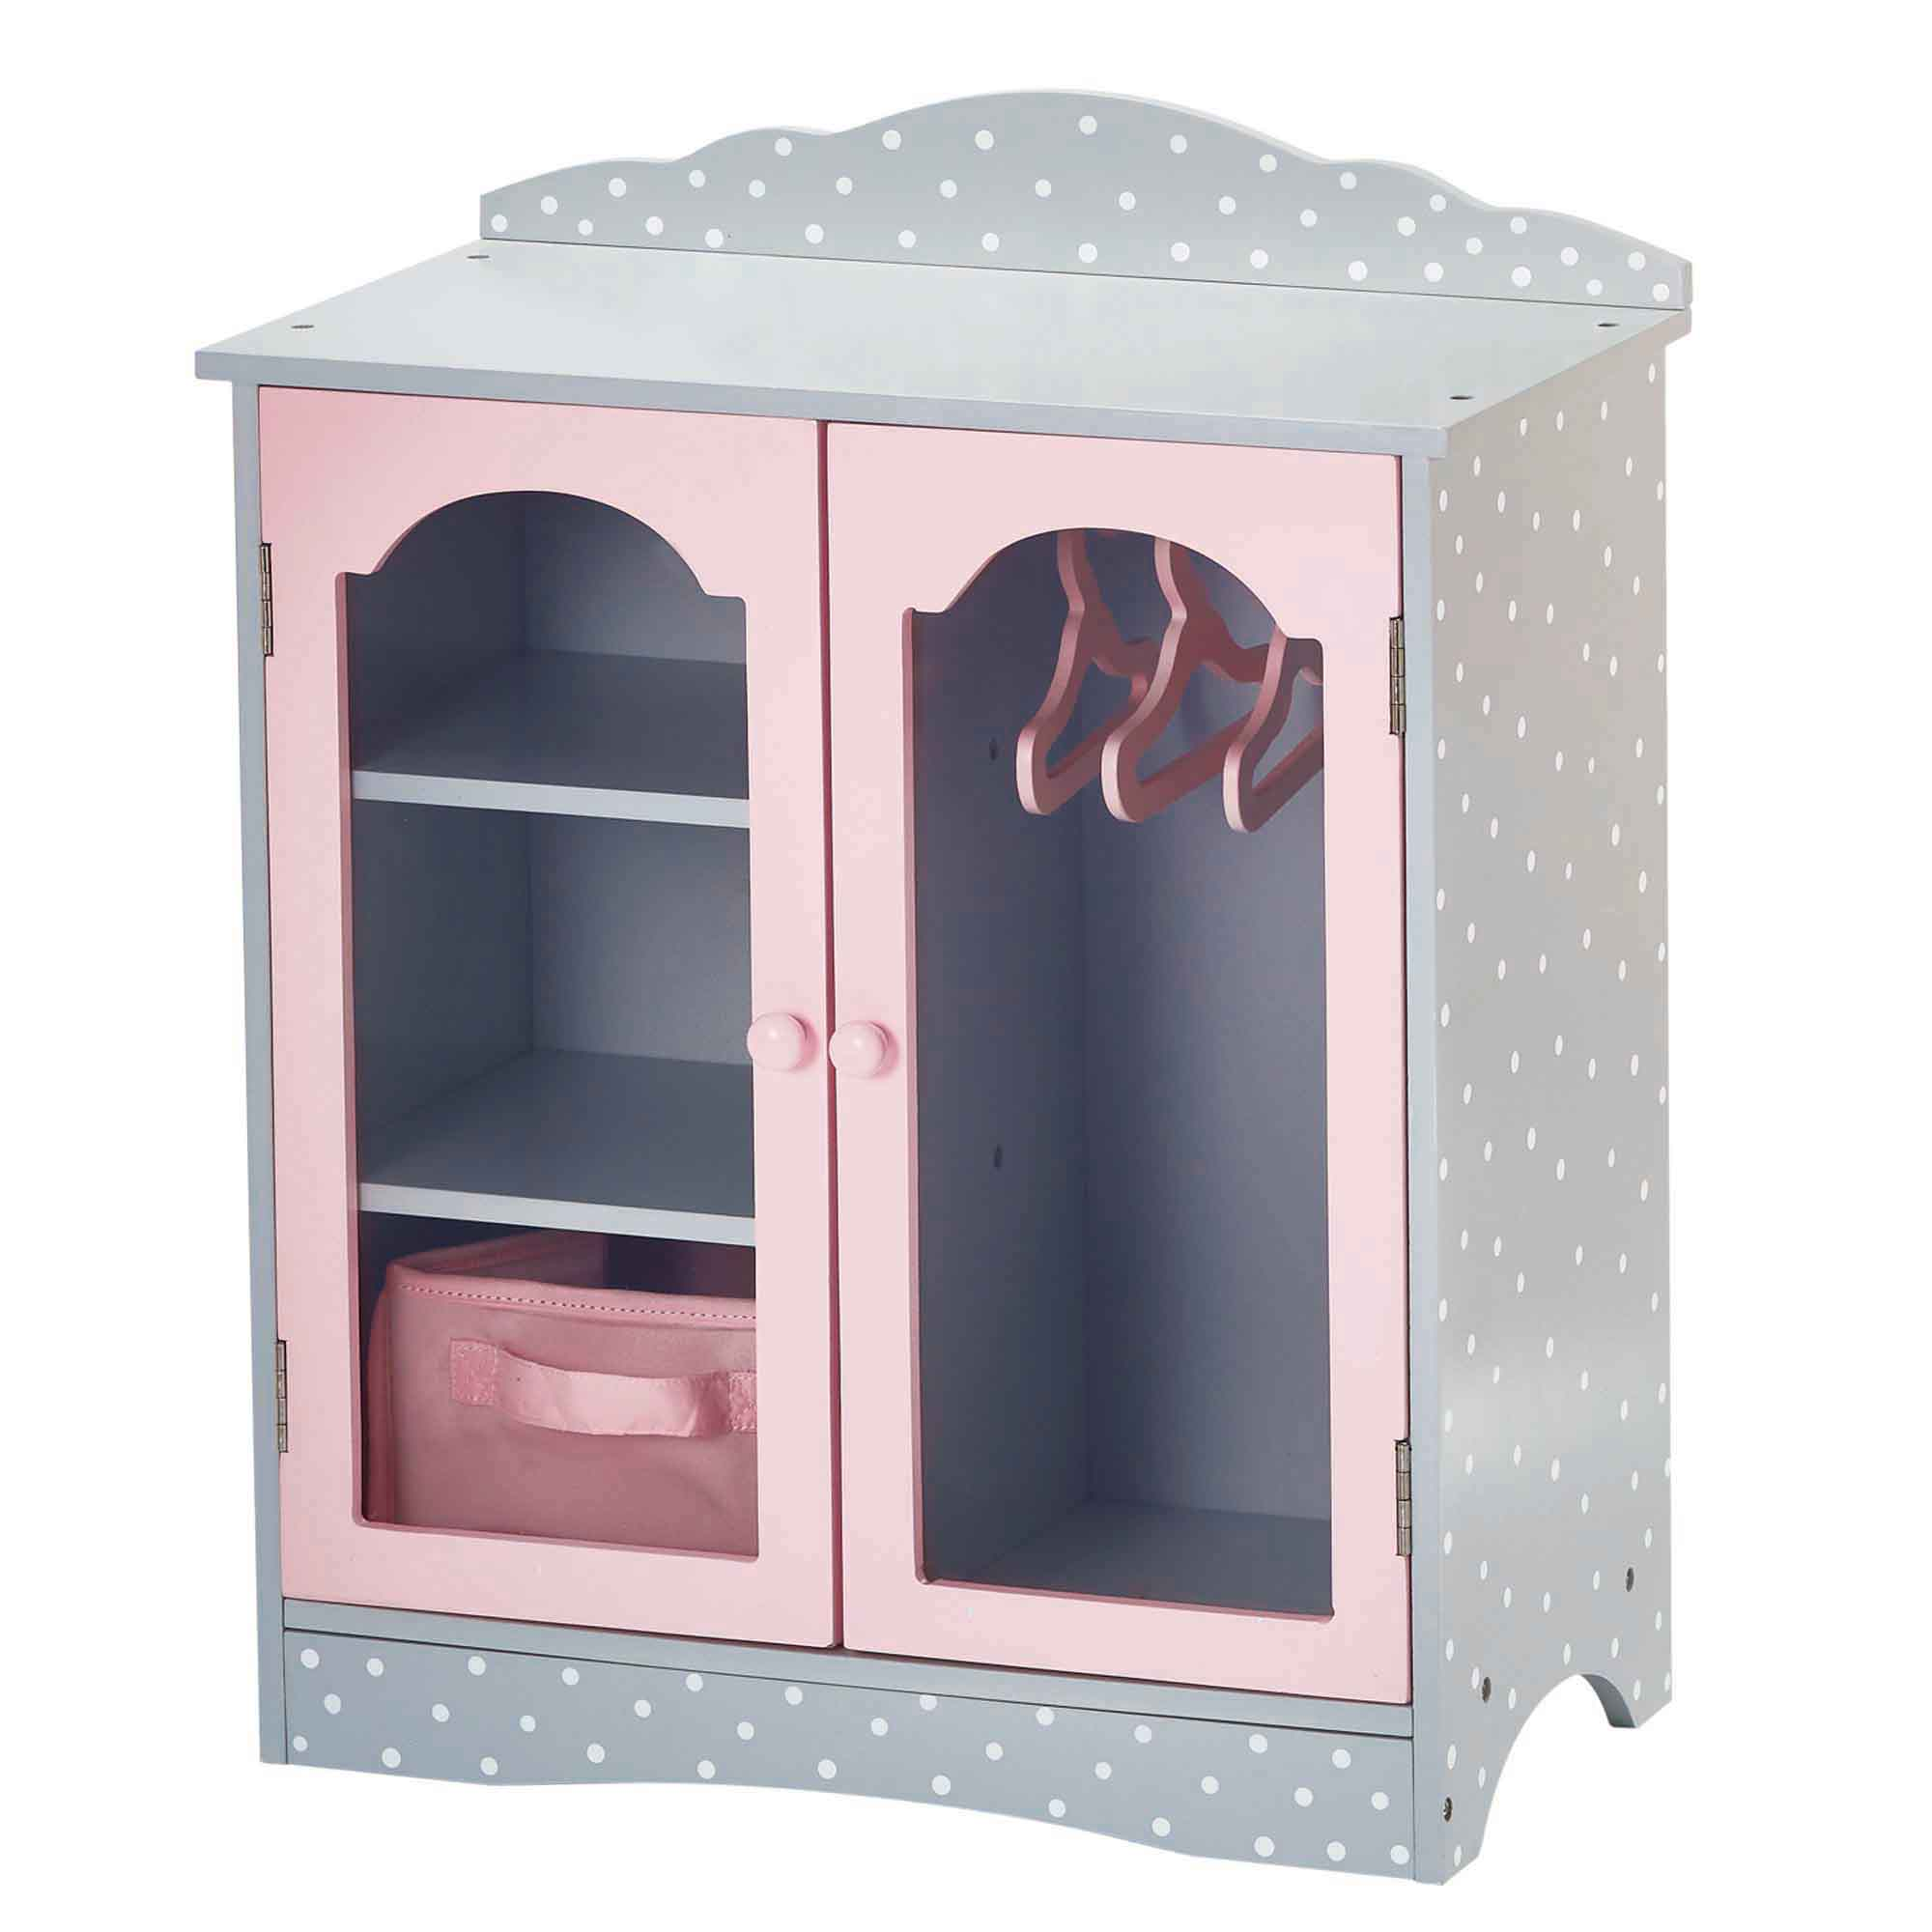 Olivia's little world ~ Polka Dot Princess 45cm Doll Furniture ~ Fancy Closet with 3 hangers 3+